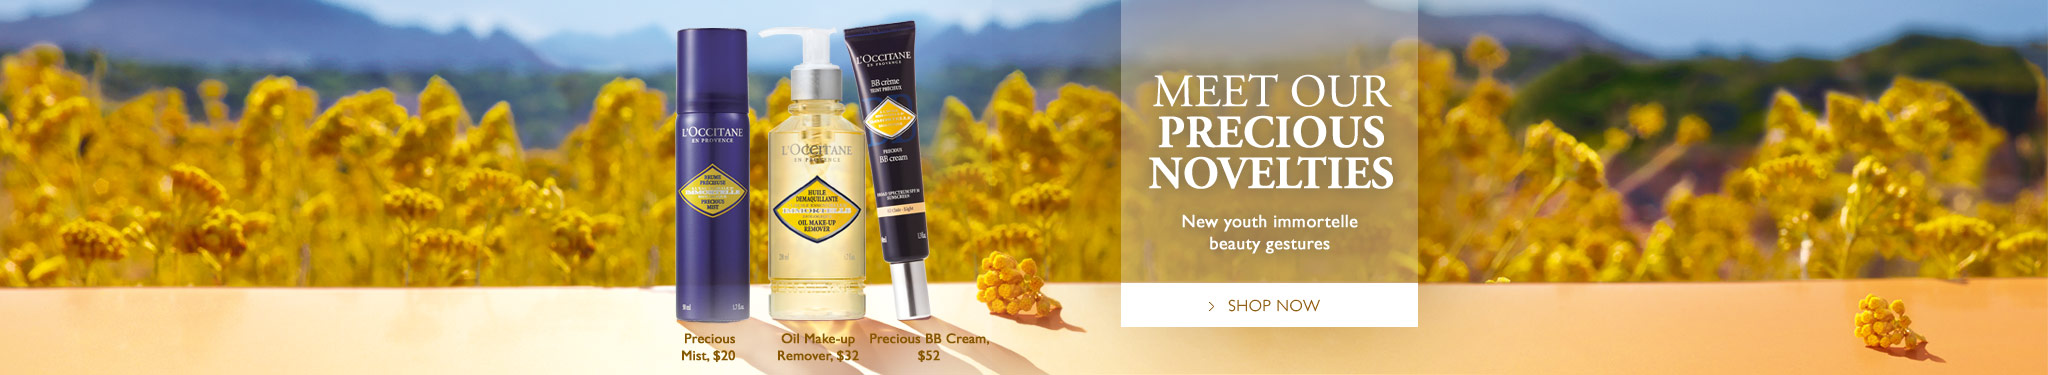 Immortelle Novelties